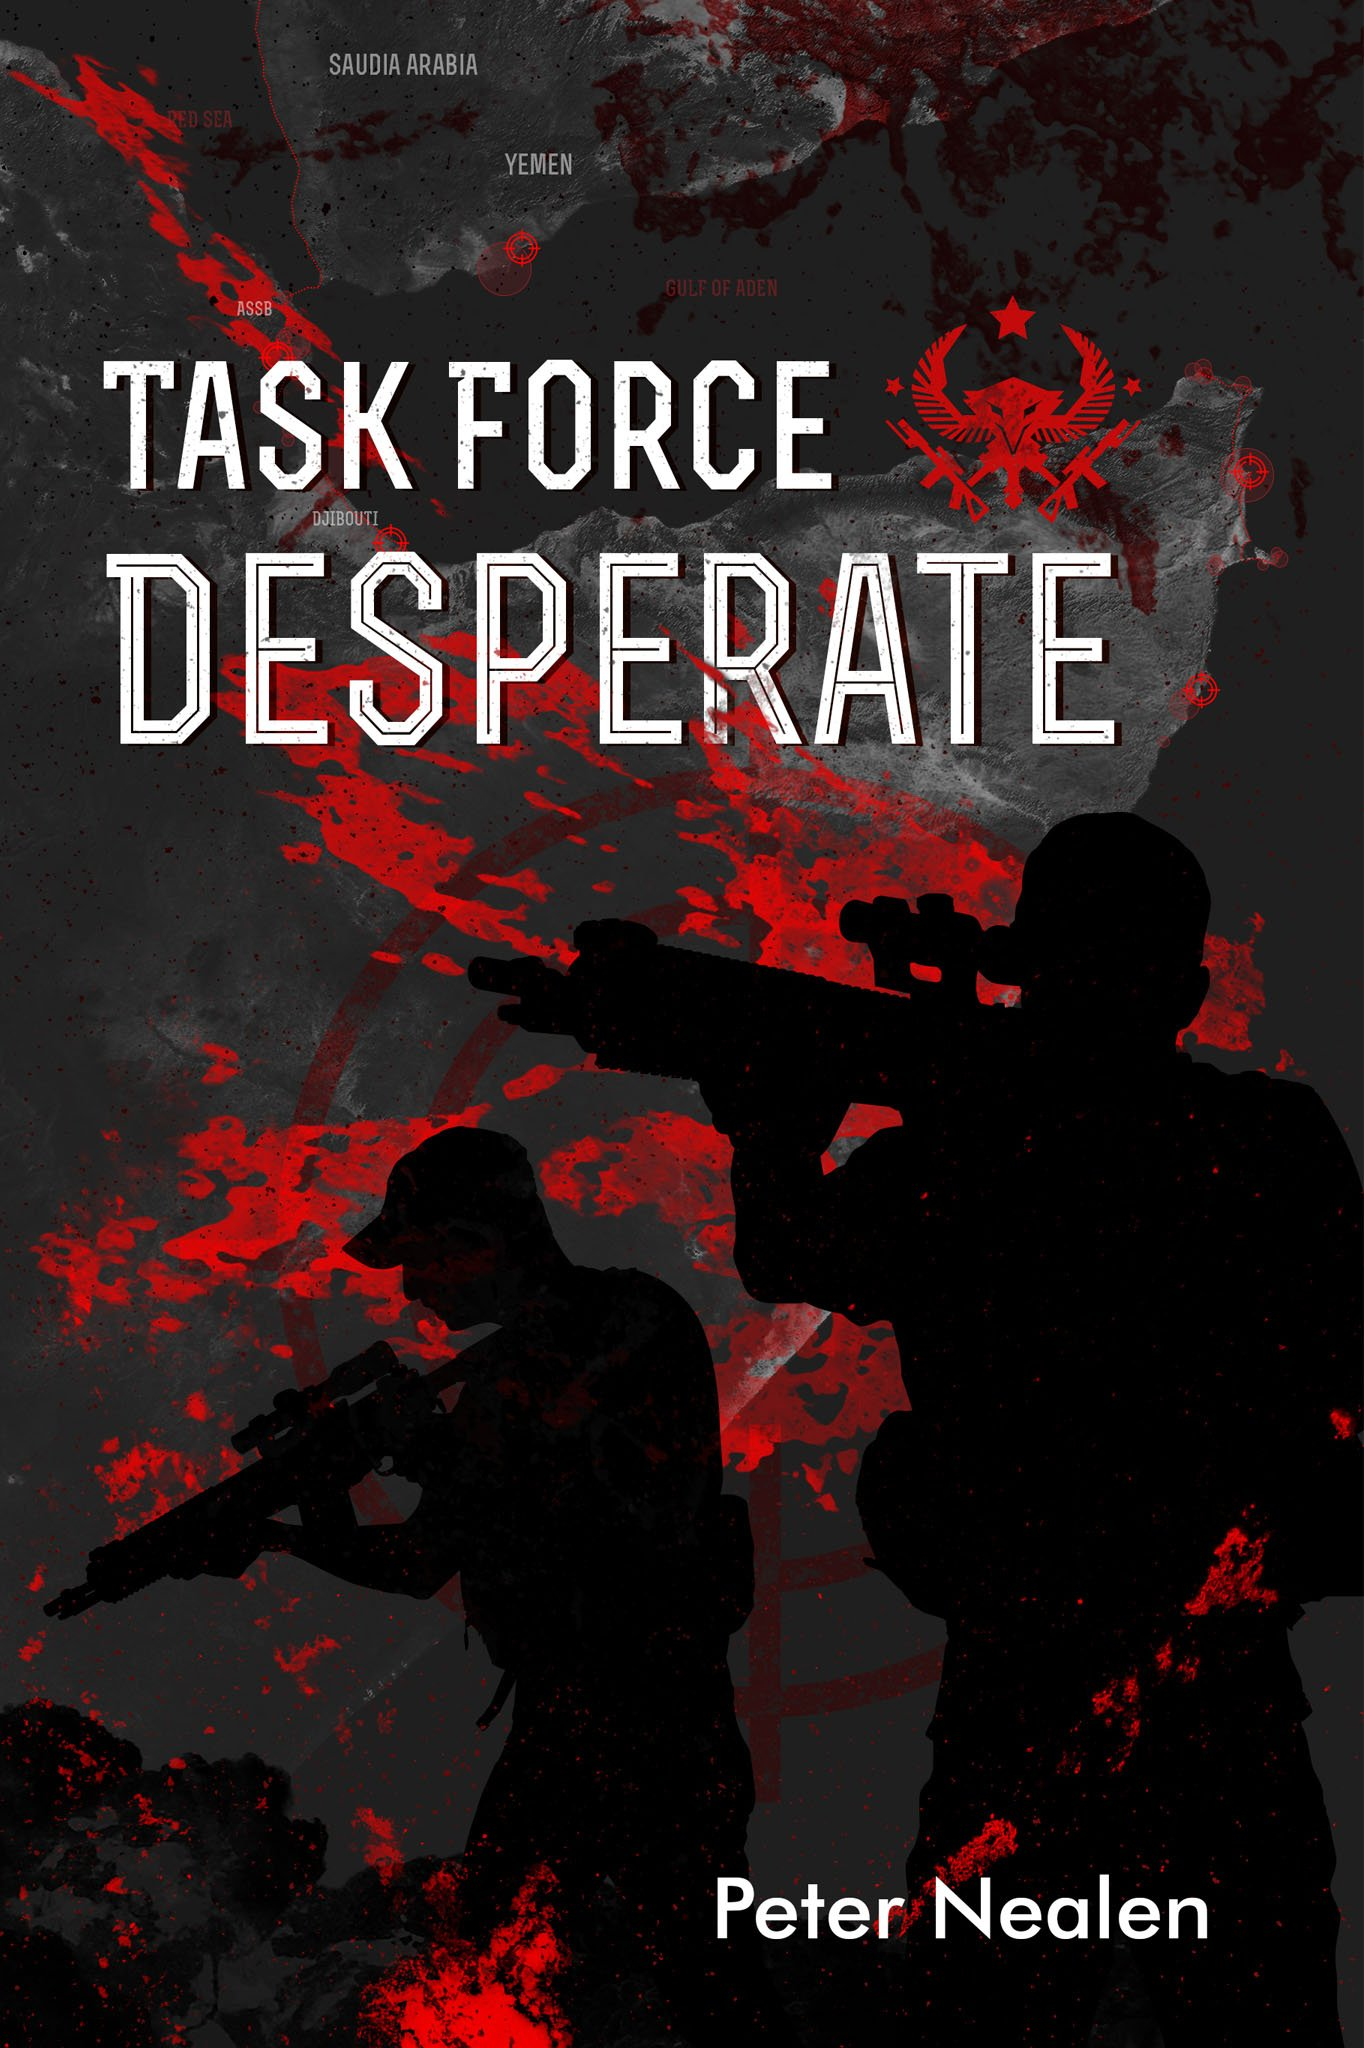 Task Force Desperate by Peter Nealen